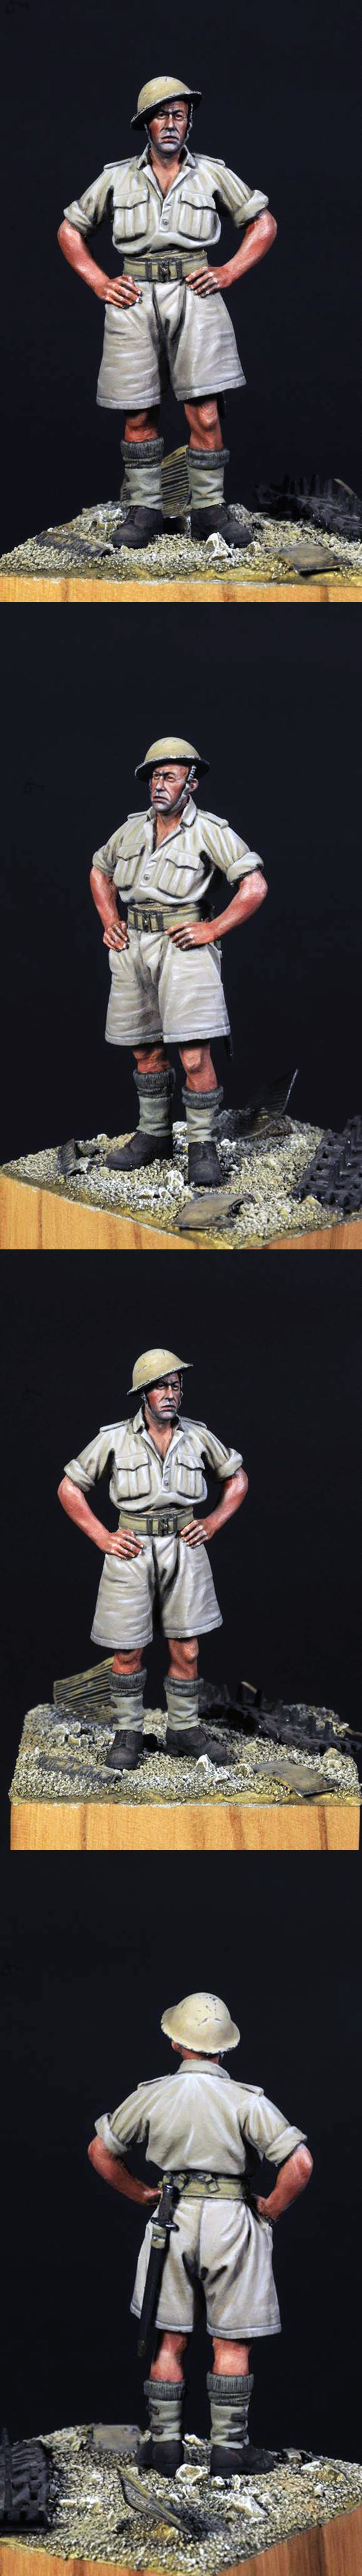 Pin by John Gkialpis on Figures Miniature figurines